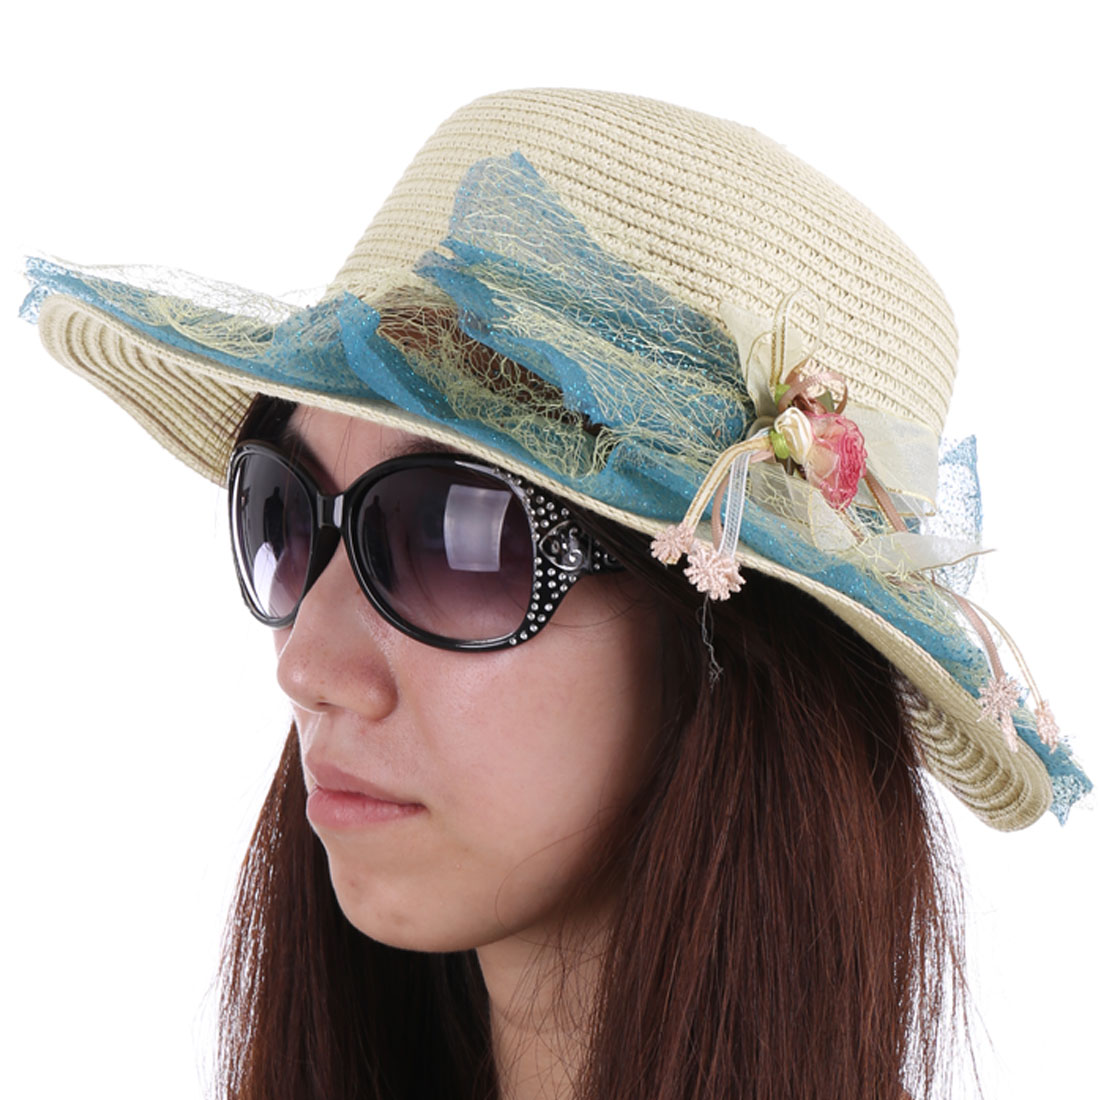 Blue Mesh Covered Flower Decor Beige Sun Straw Hat for Woman